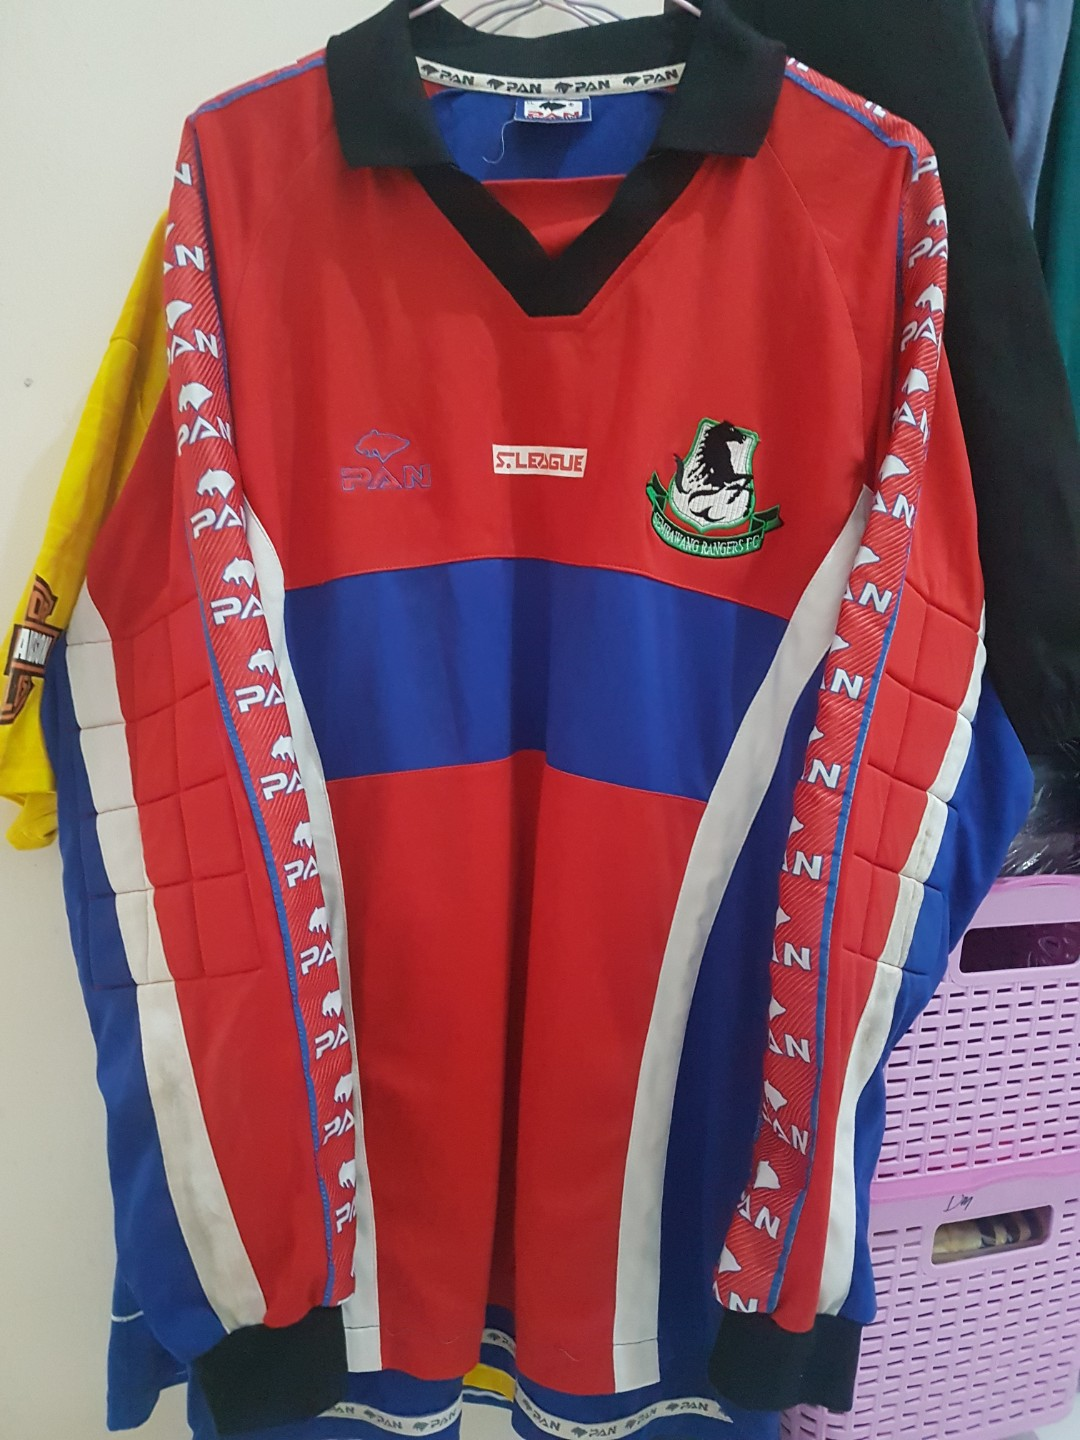 393cbaebfa9 Authentic Sembawang Rangers FC GK Jersey, Sports, Sports Apparel on  Carousell